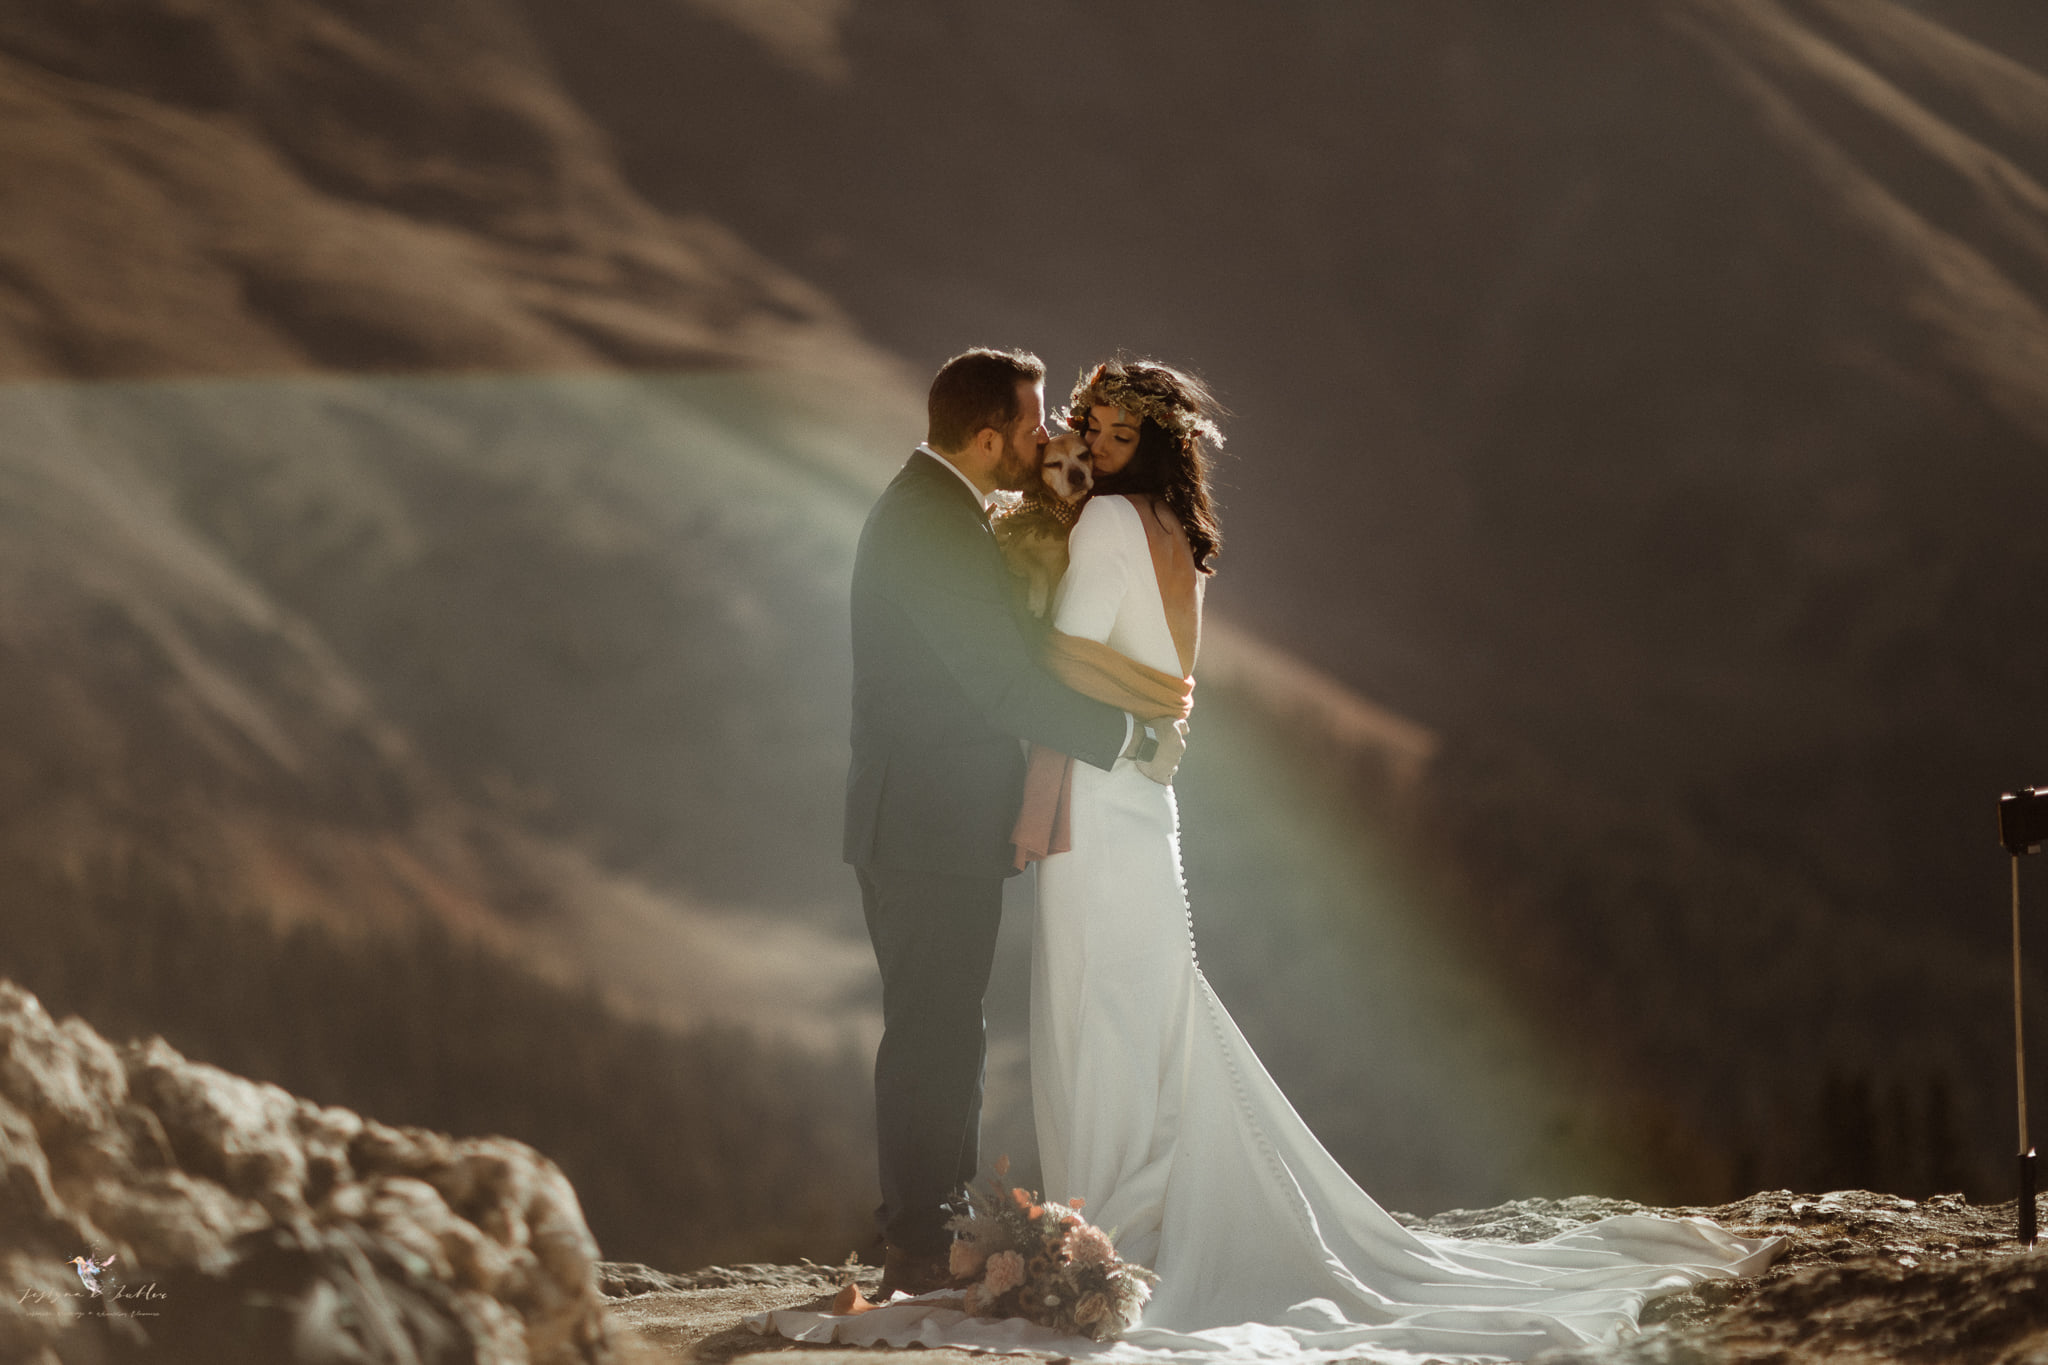 A wedding couple is holding each other and their dog and standing on a mountain top.